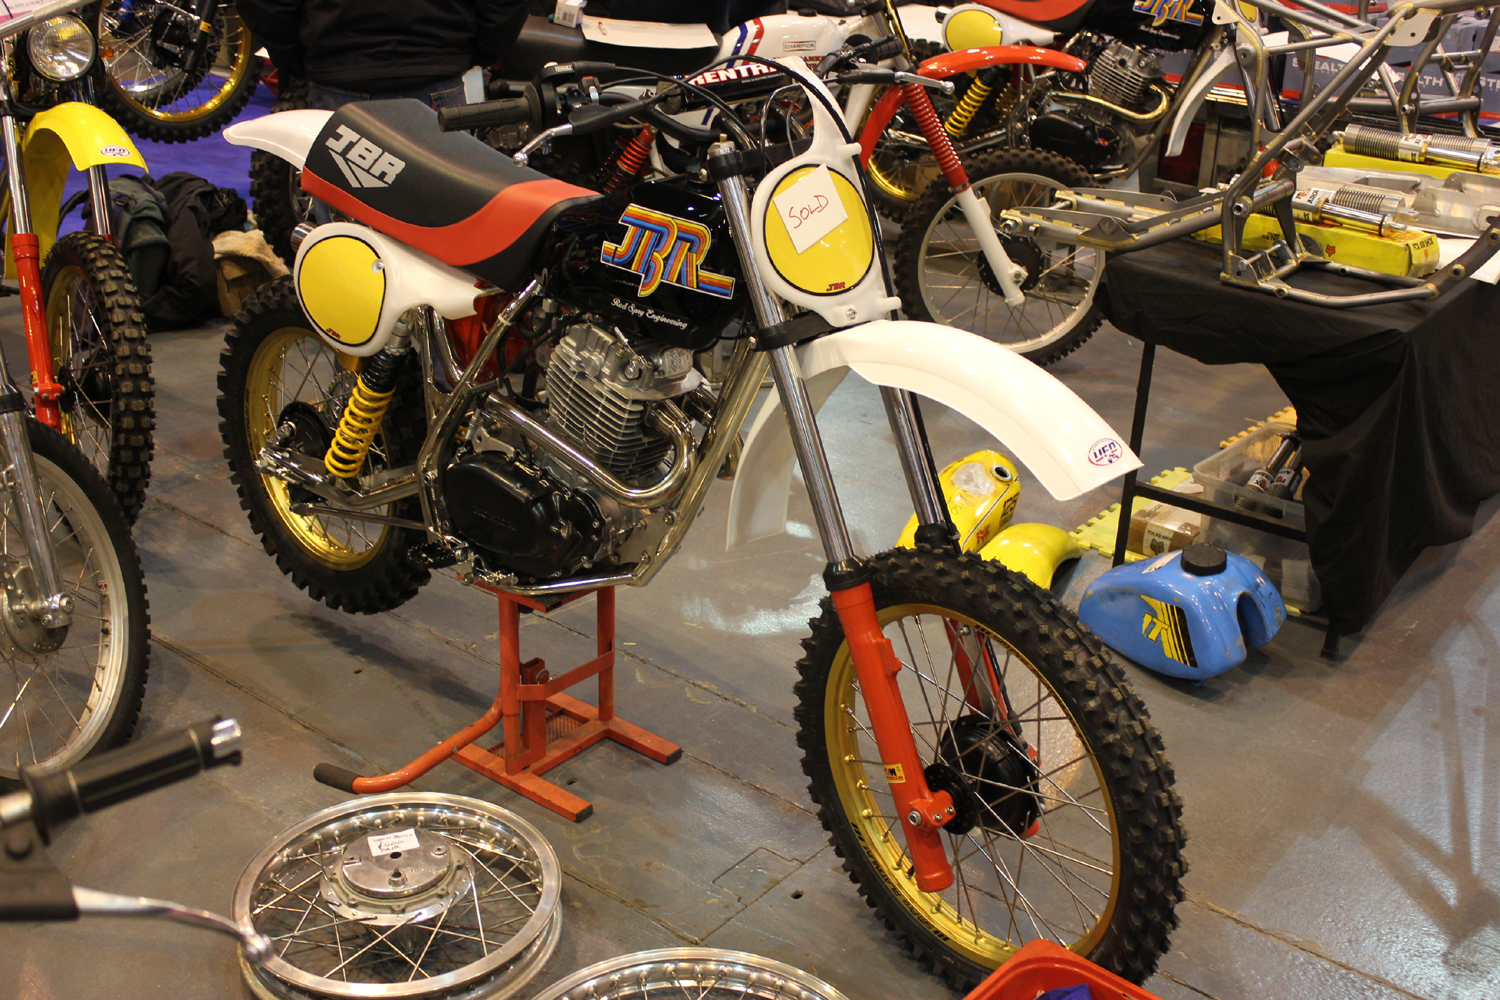 classicdirtbikerider.com-photo by Mr J-2015 Telford classic dirt bike show-CLASSIC FOURSTROKE HONDA JBR TWINSHOCK MOTOCROSS BIKE